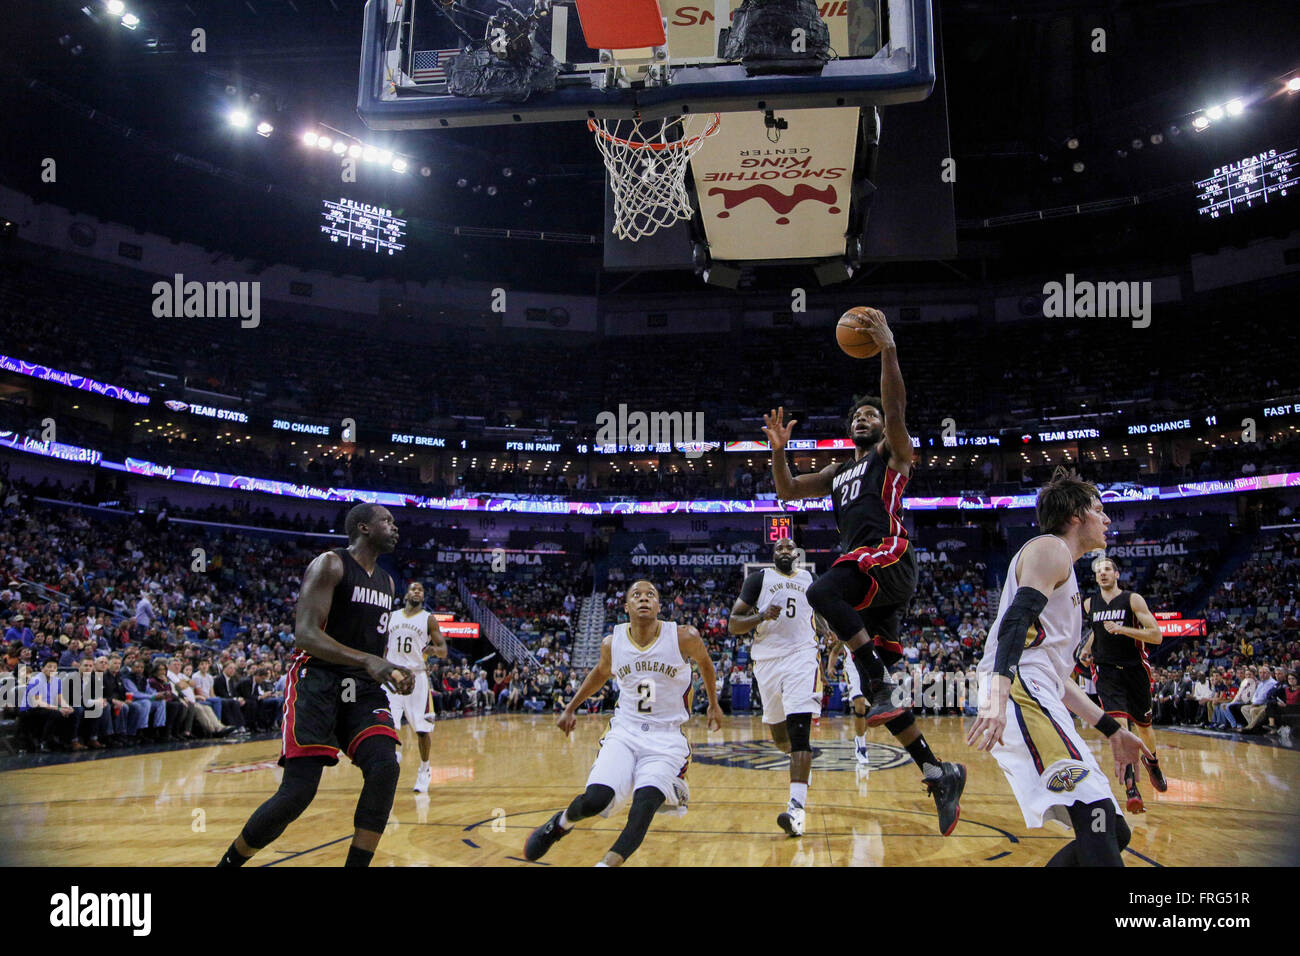 Justise Winslow Stock Photos   Justise Winslow Stock Images - Alamy 7d09a1a9d